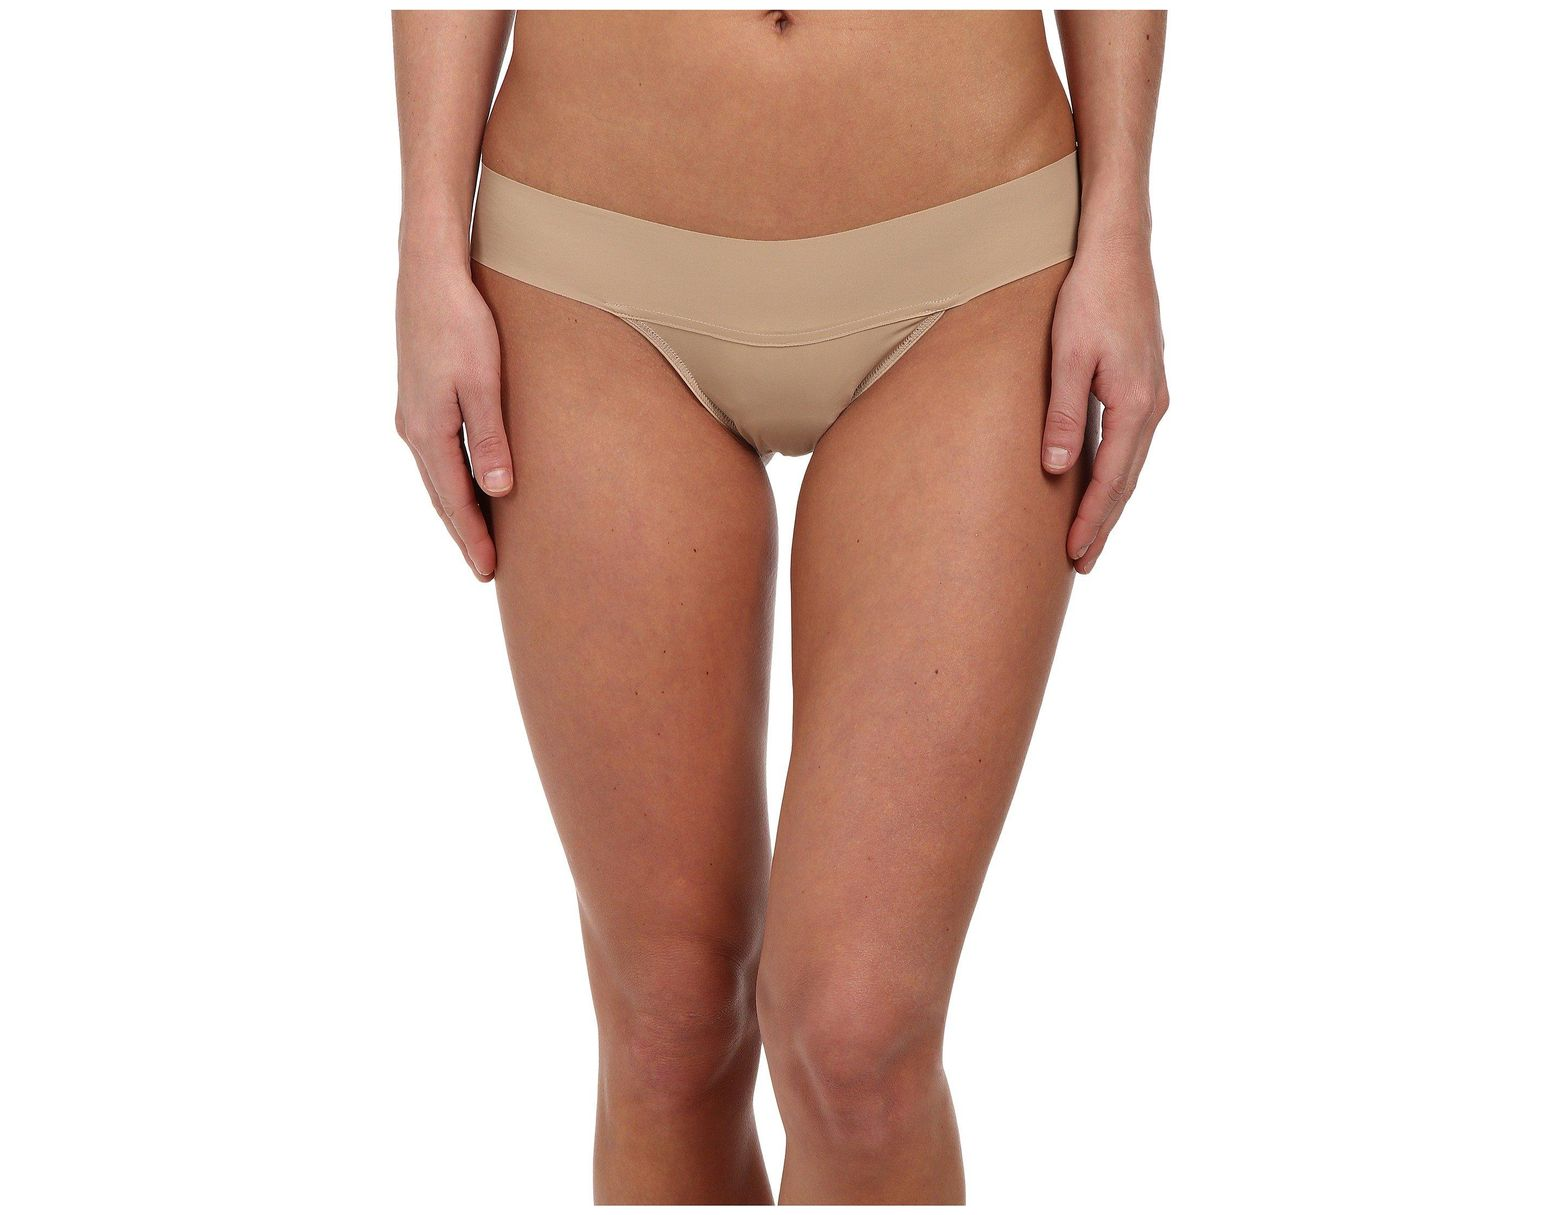 99bfcc947117 Hanky Panky Bare(r) Eve Natural Rise Thong in Brown - Lyst